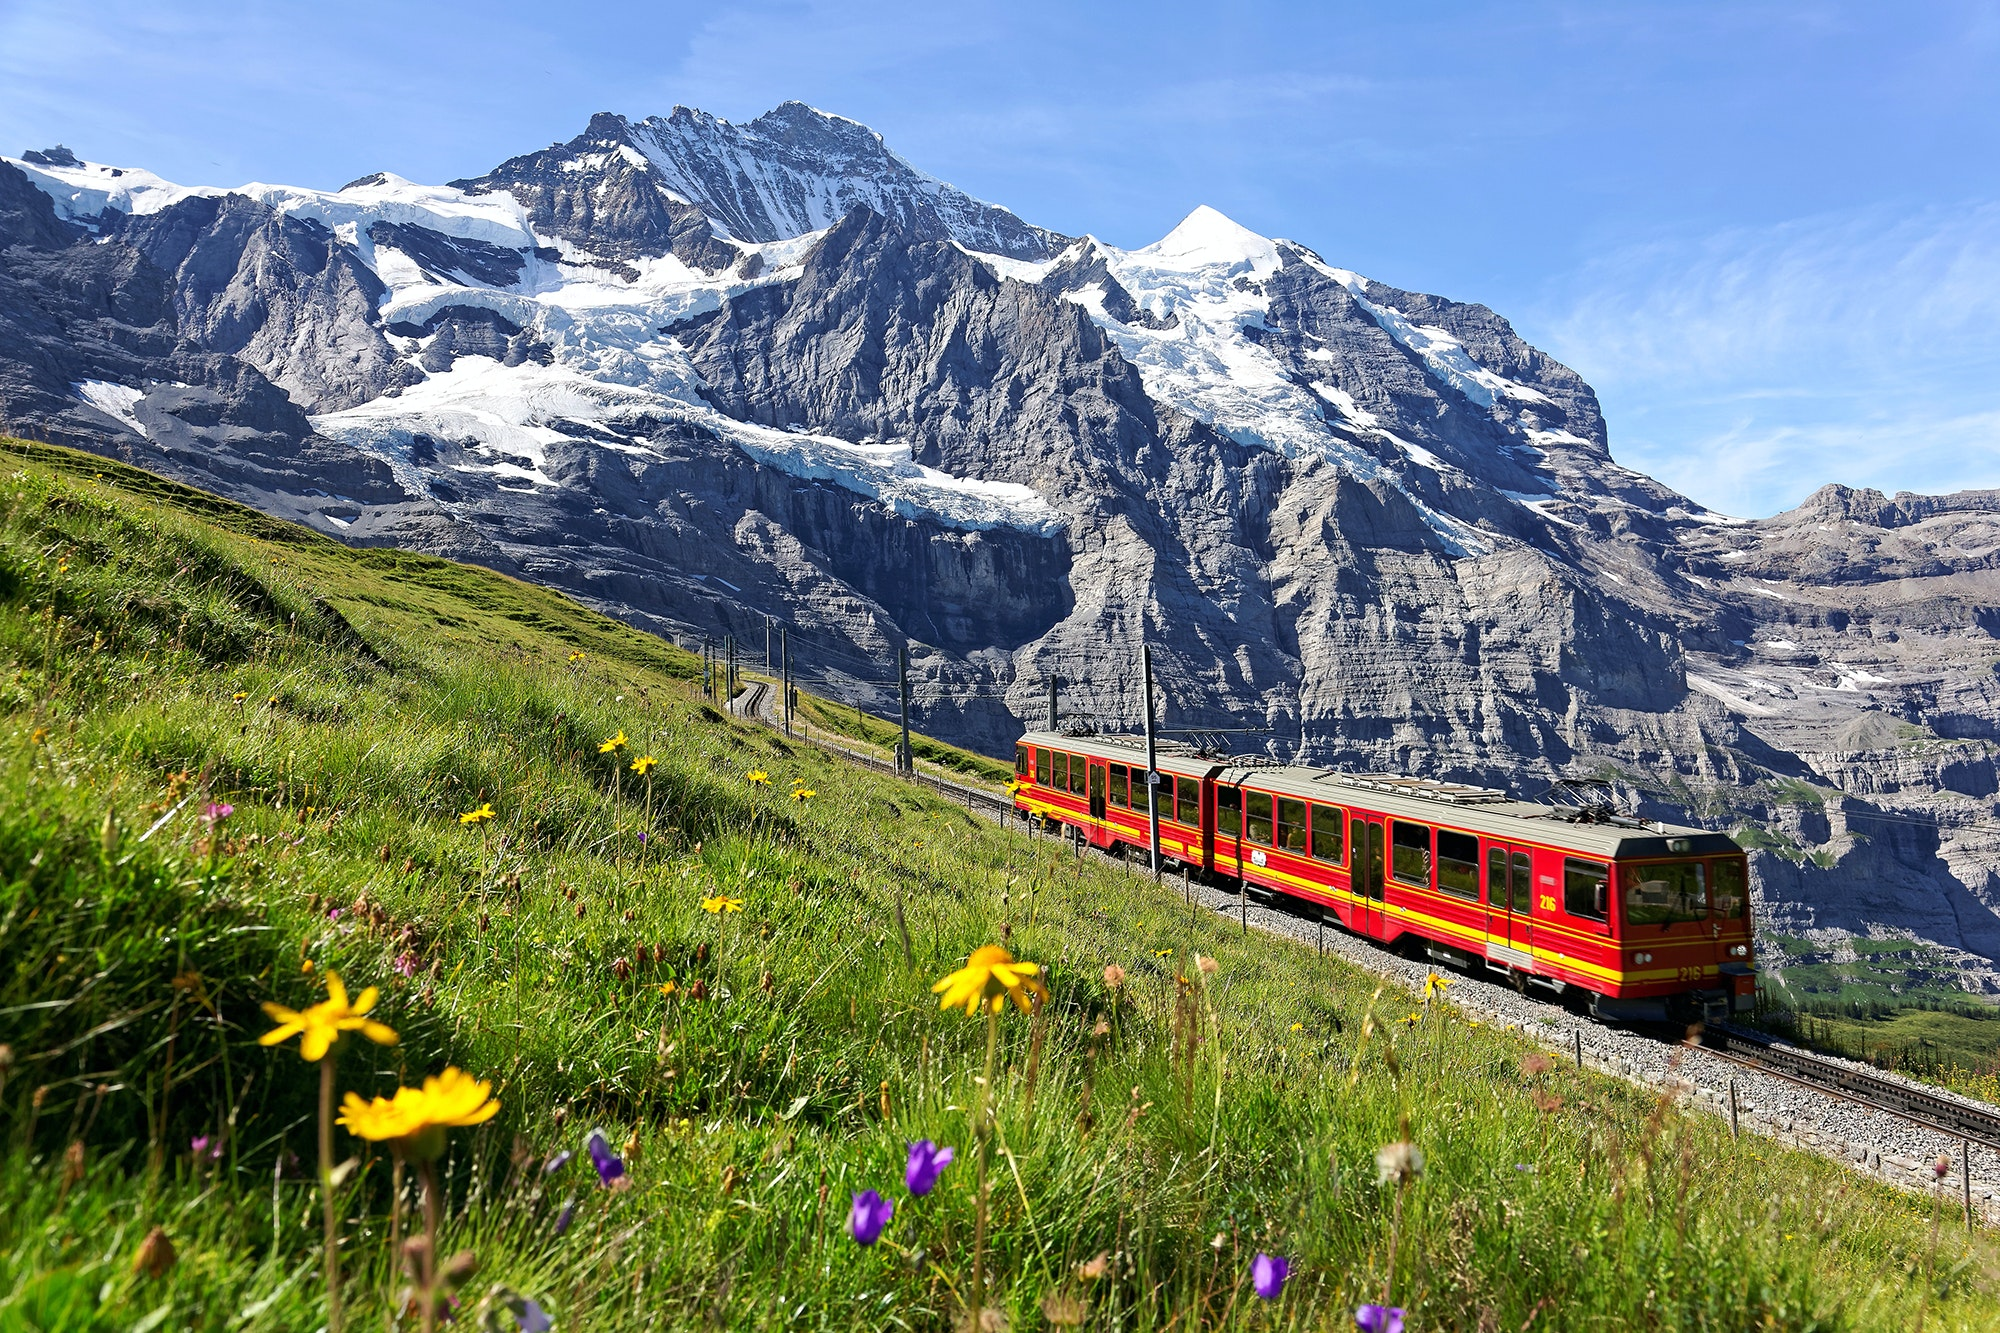 The Jungfrau Railway passes by grassy hillsides in the Bernese Oberland before reaching the highest-altitude train station in Europe.